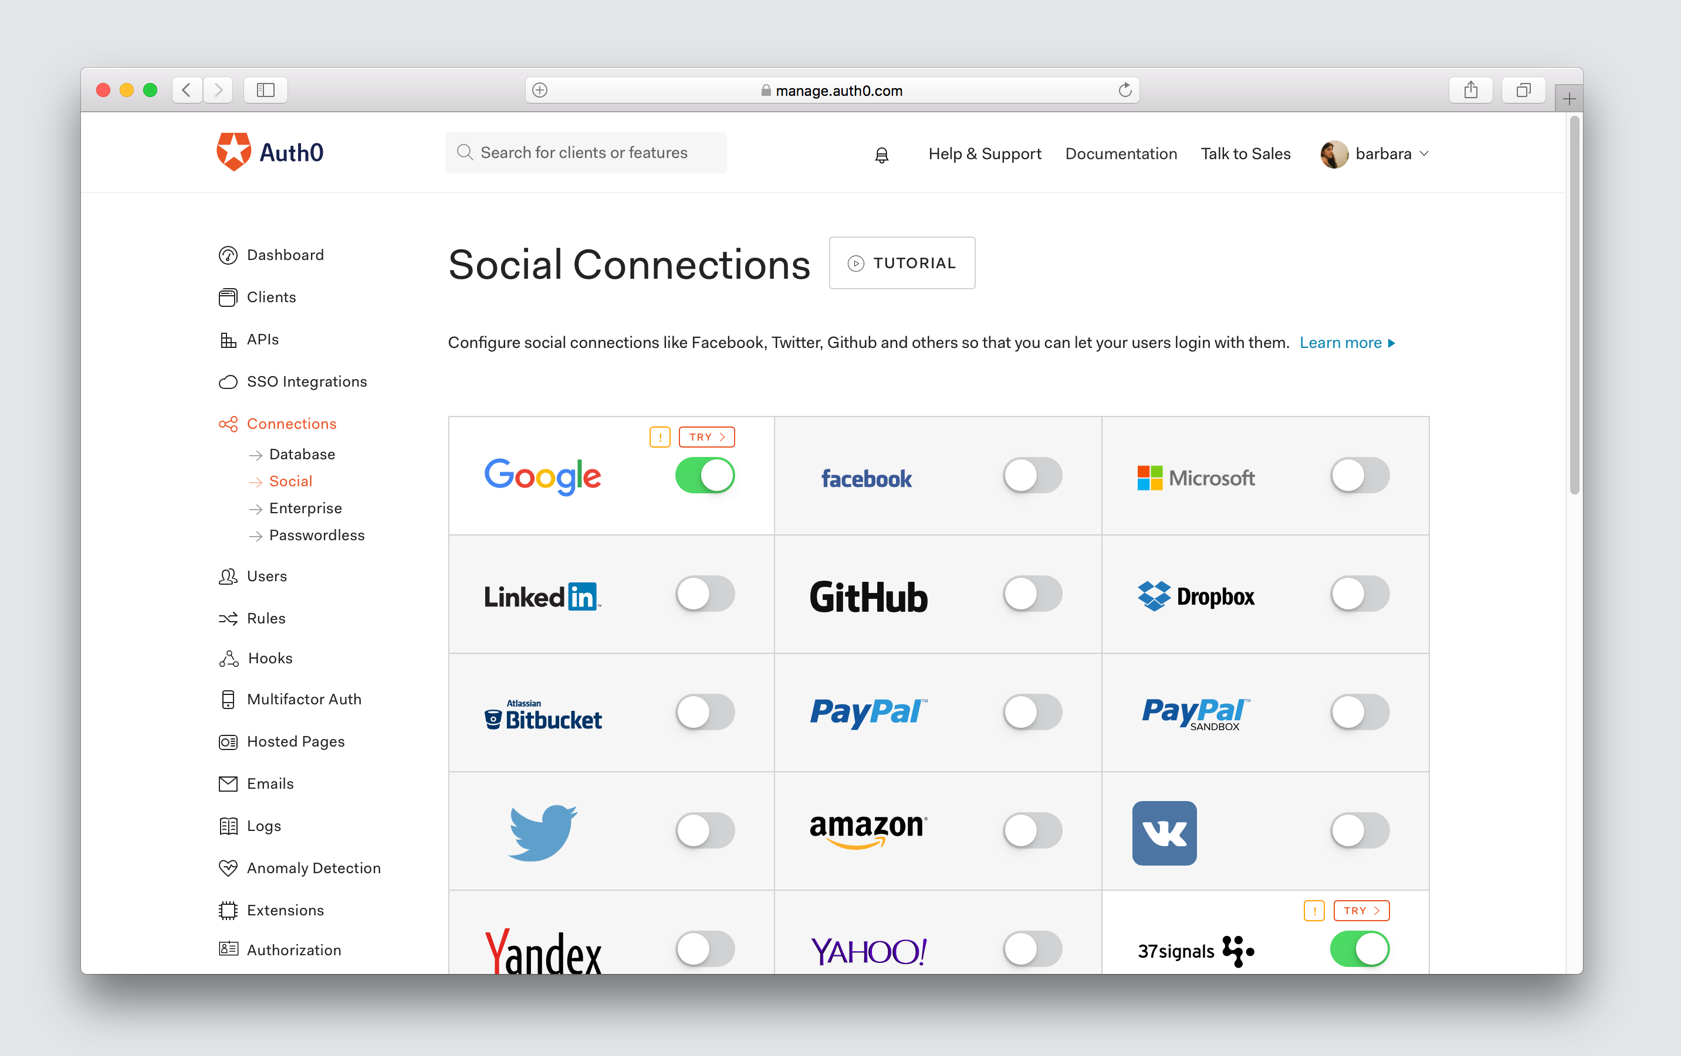 Auth0 Social Connections dashboard